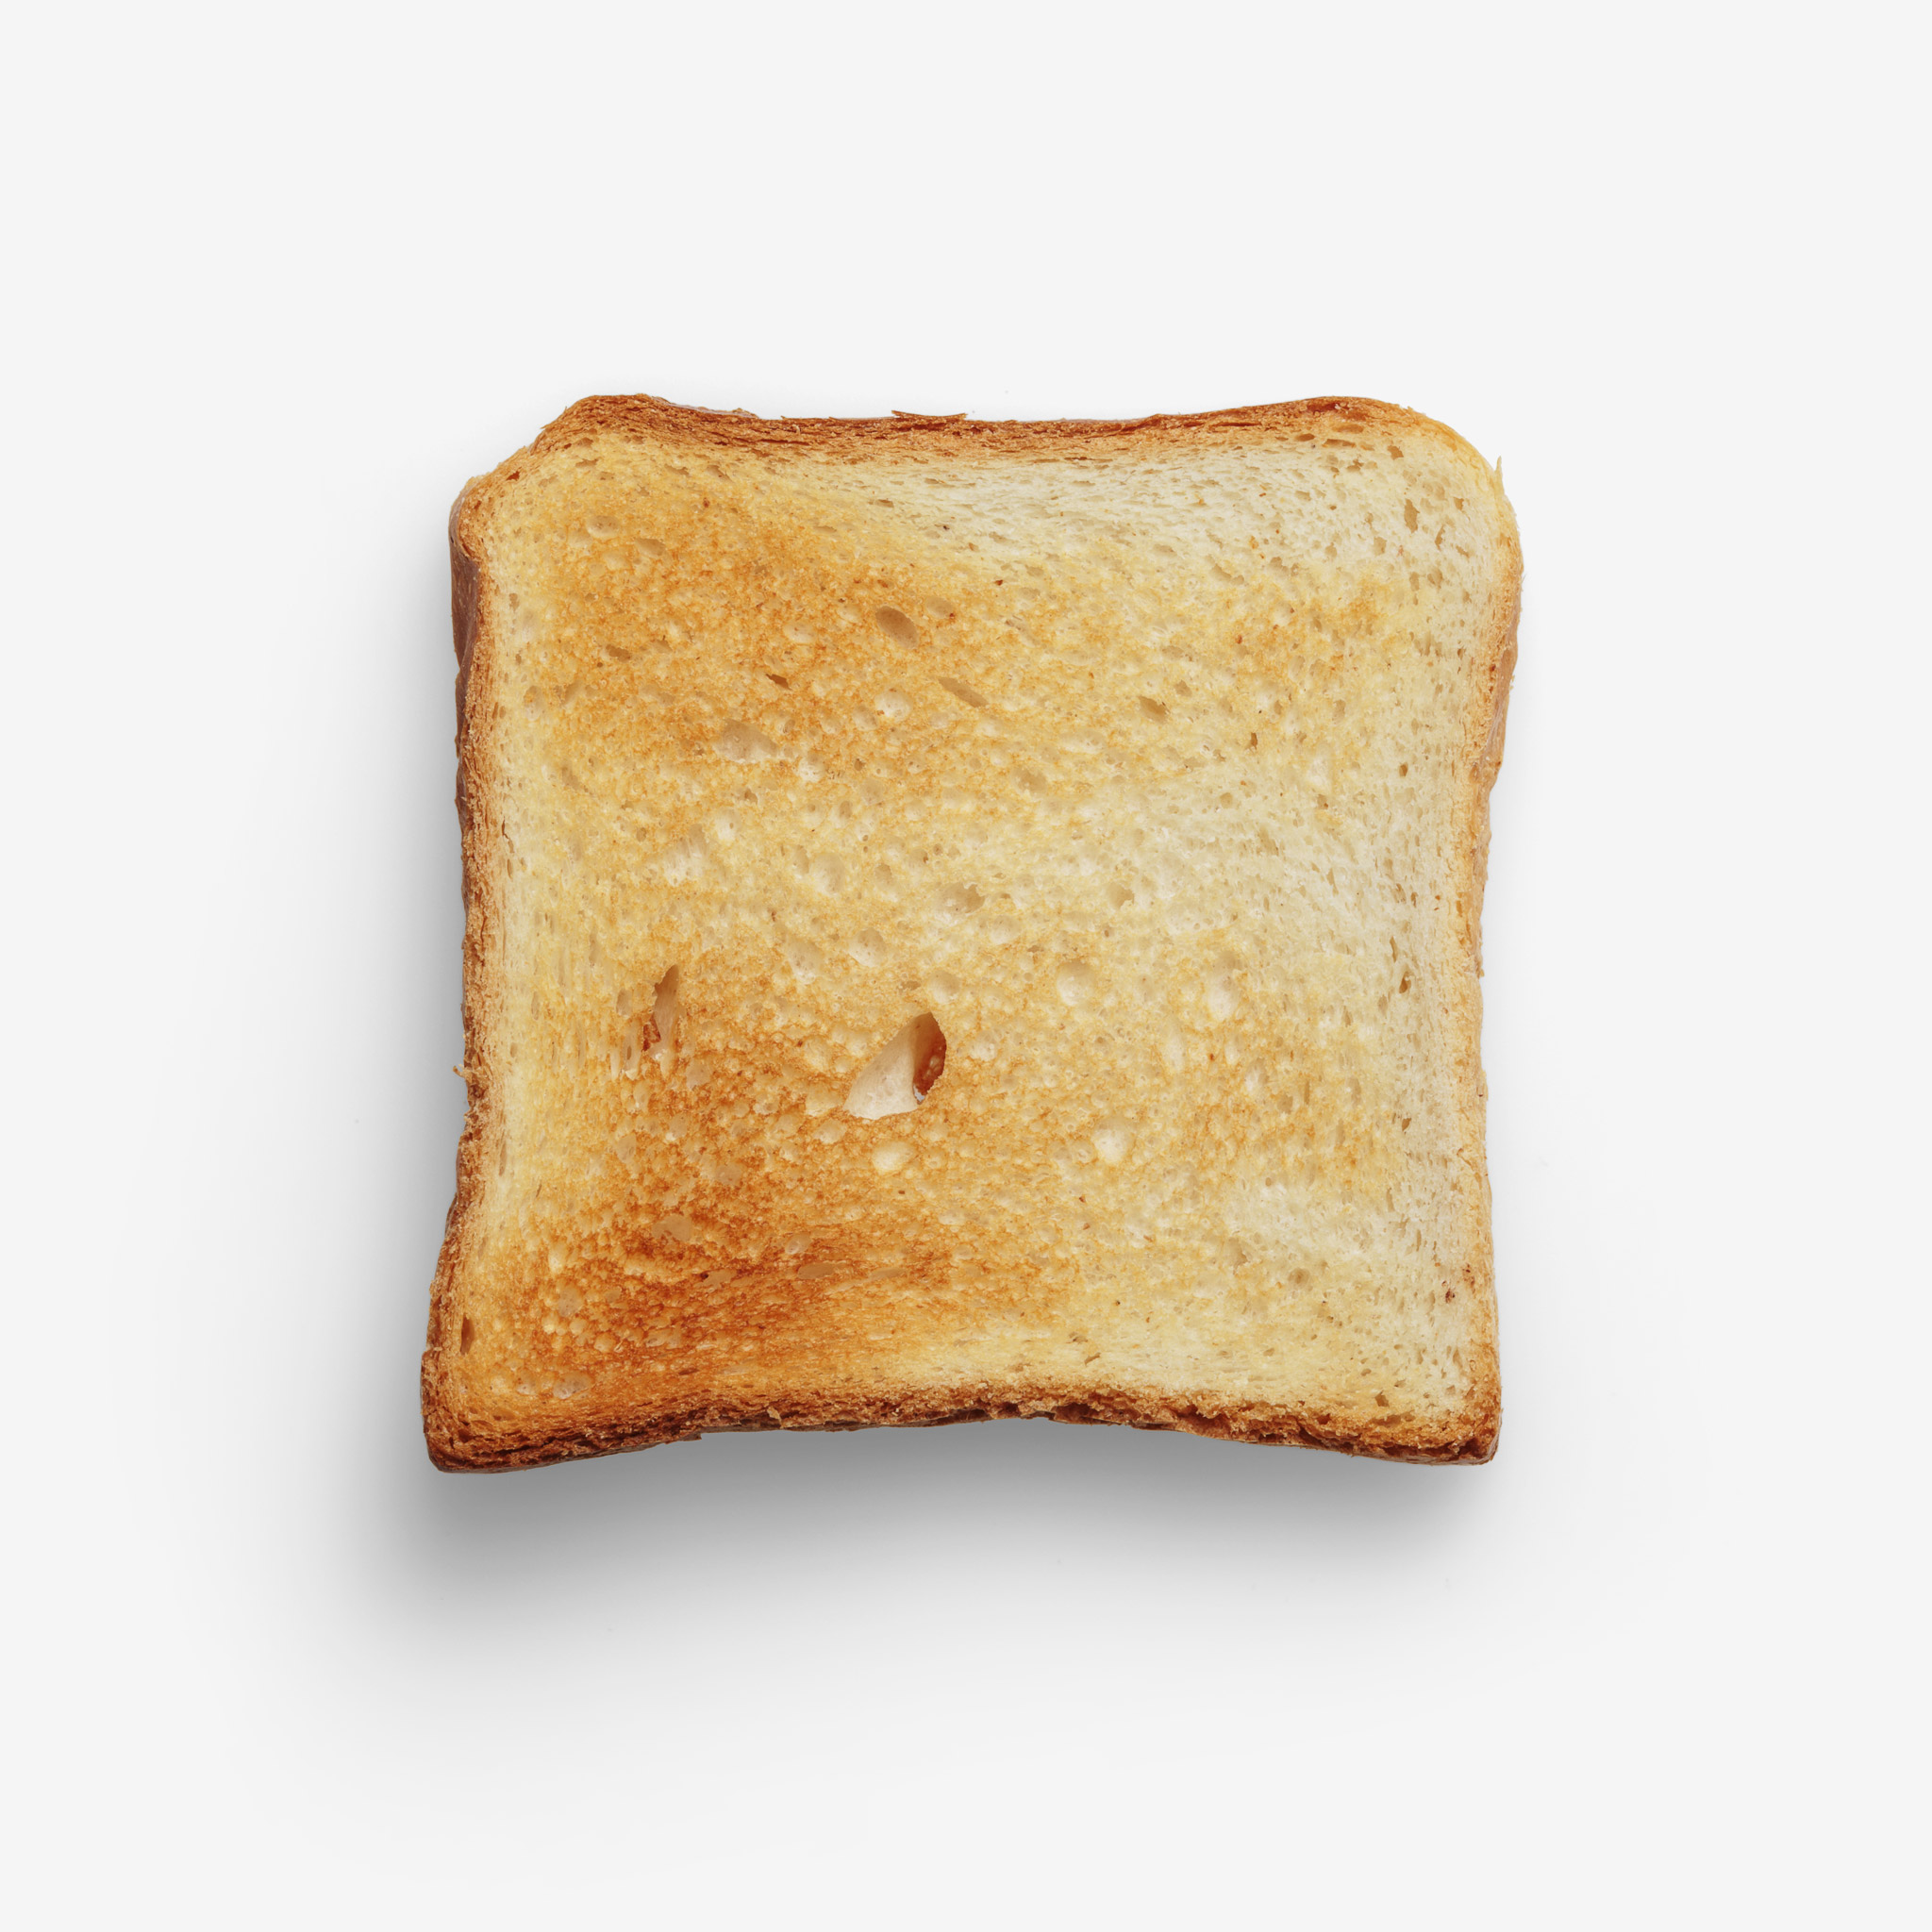 Bread PSD image with transparent background